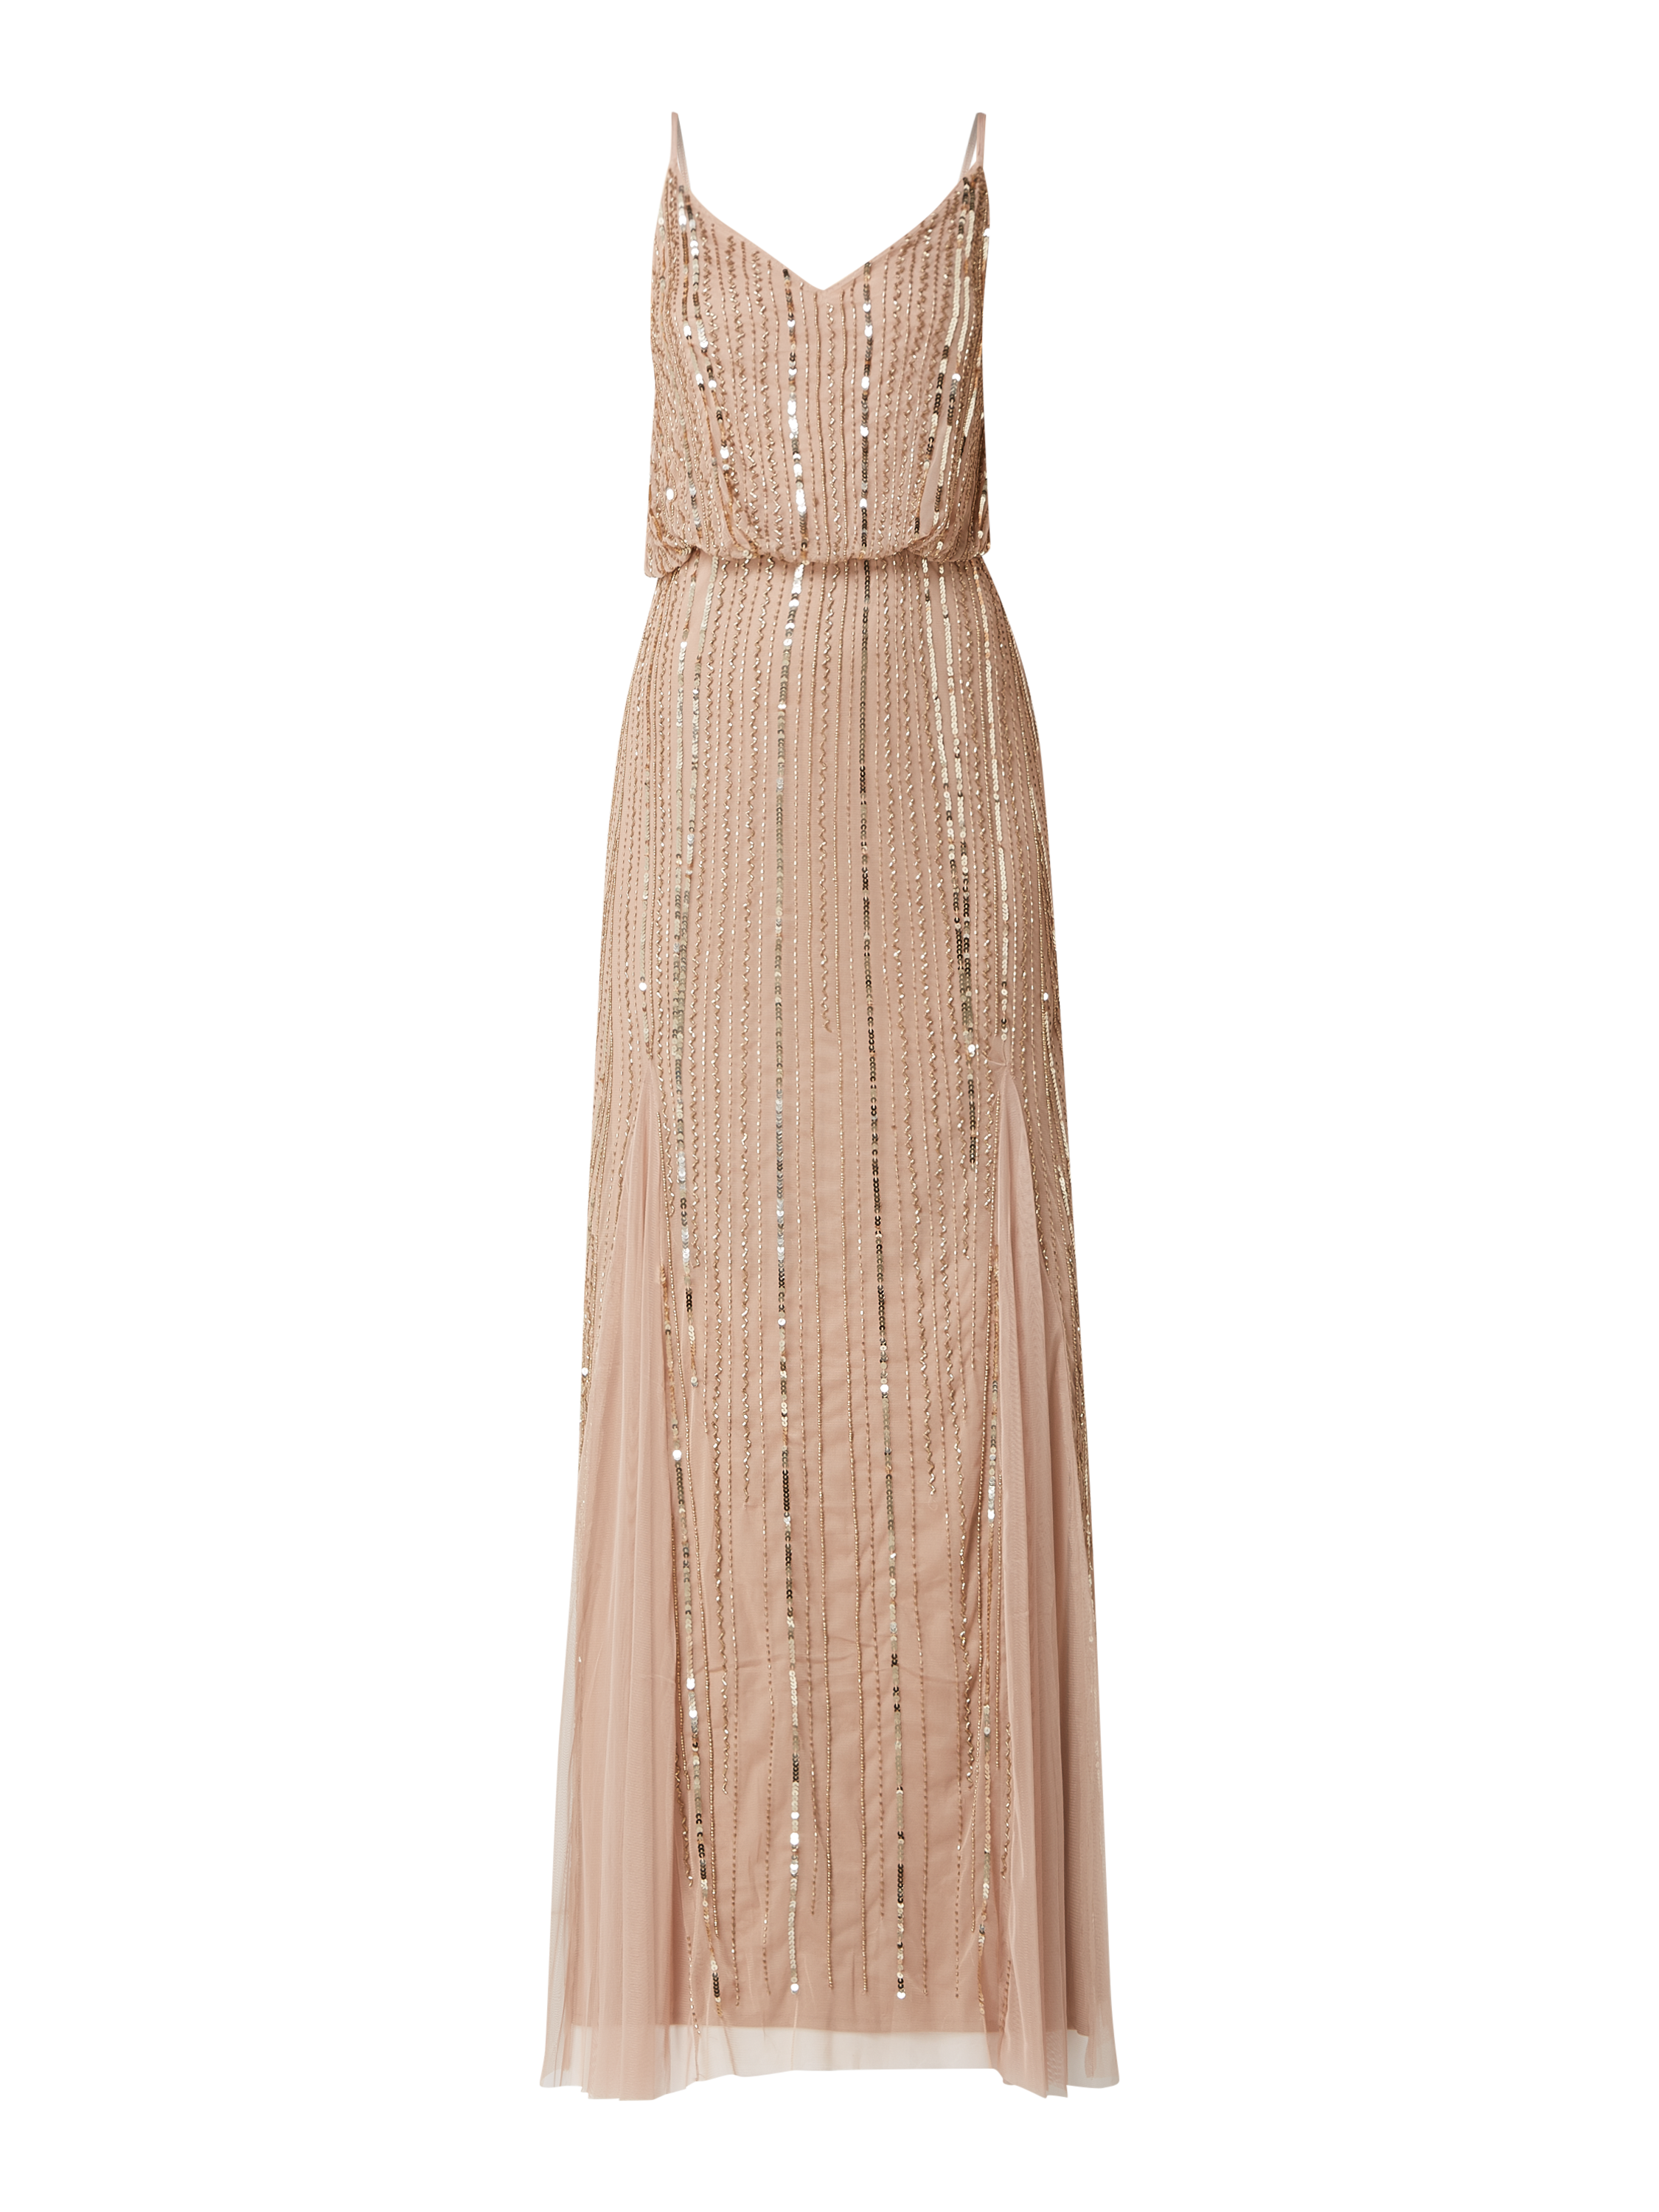 taupe beaded kleid new arrivals 1111b11 11bd11